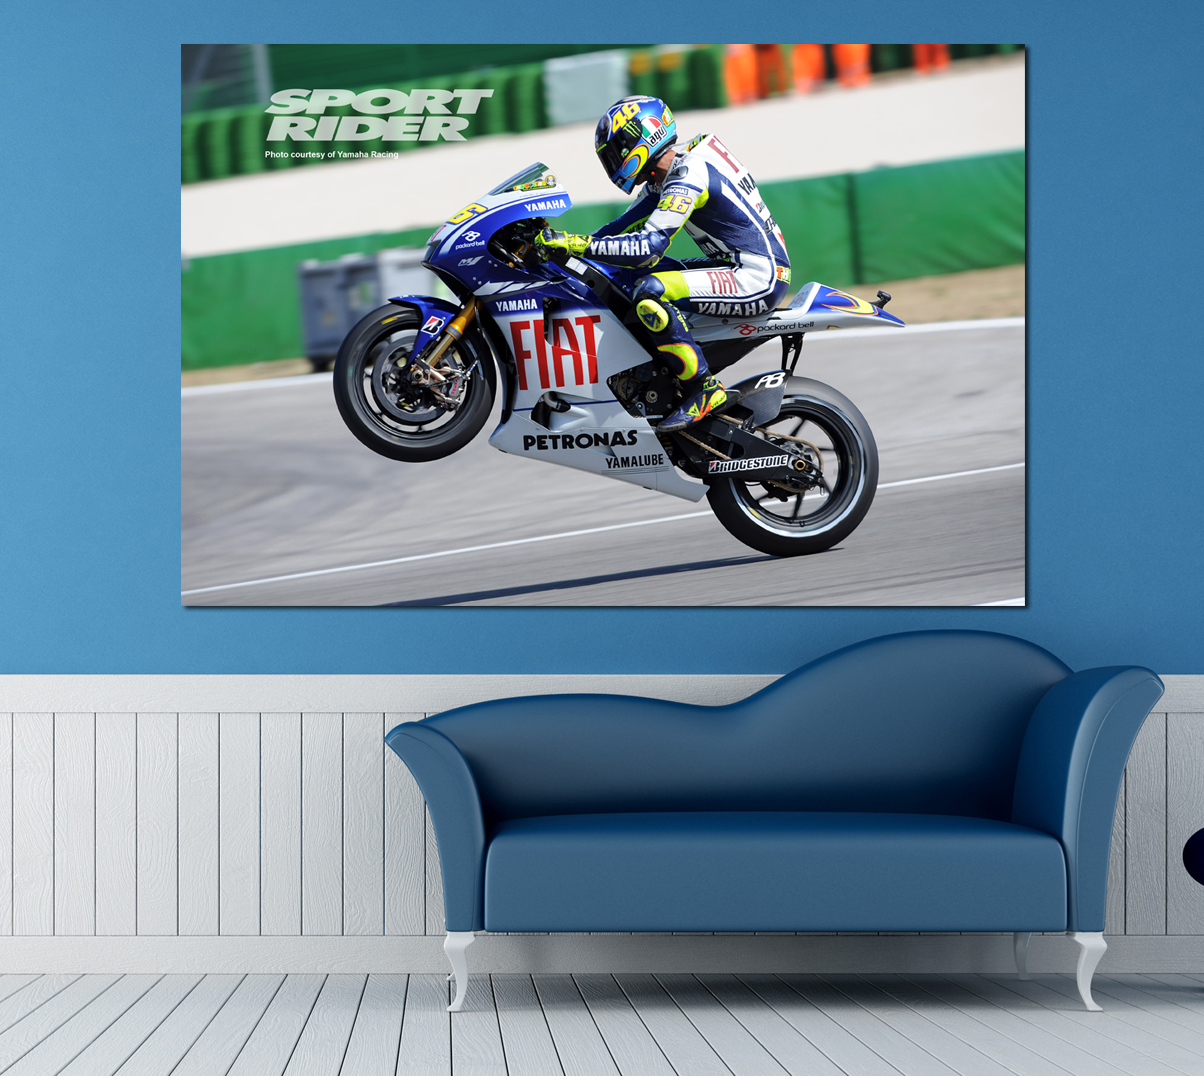 rossisports valentino rossi gagne misano moto gp poster wallart l xxl ebay. Black Bedroom Furniture Sets. Home Design Ideas